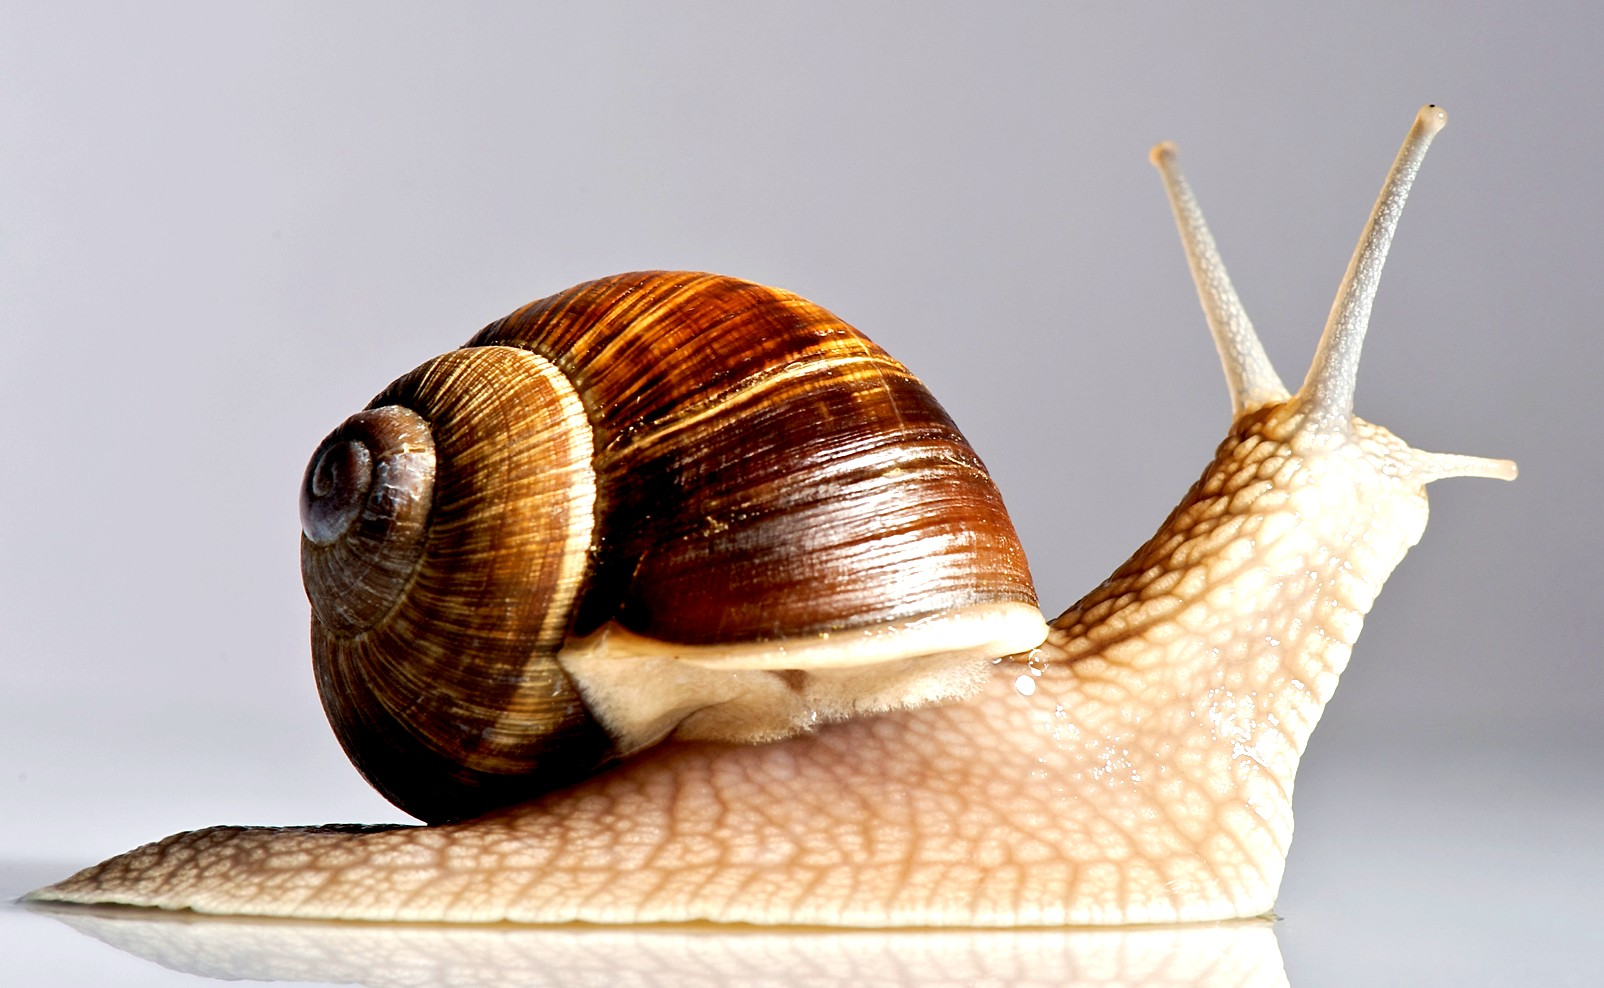 Snail Facts for Kids | LoveToKnow